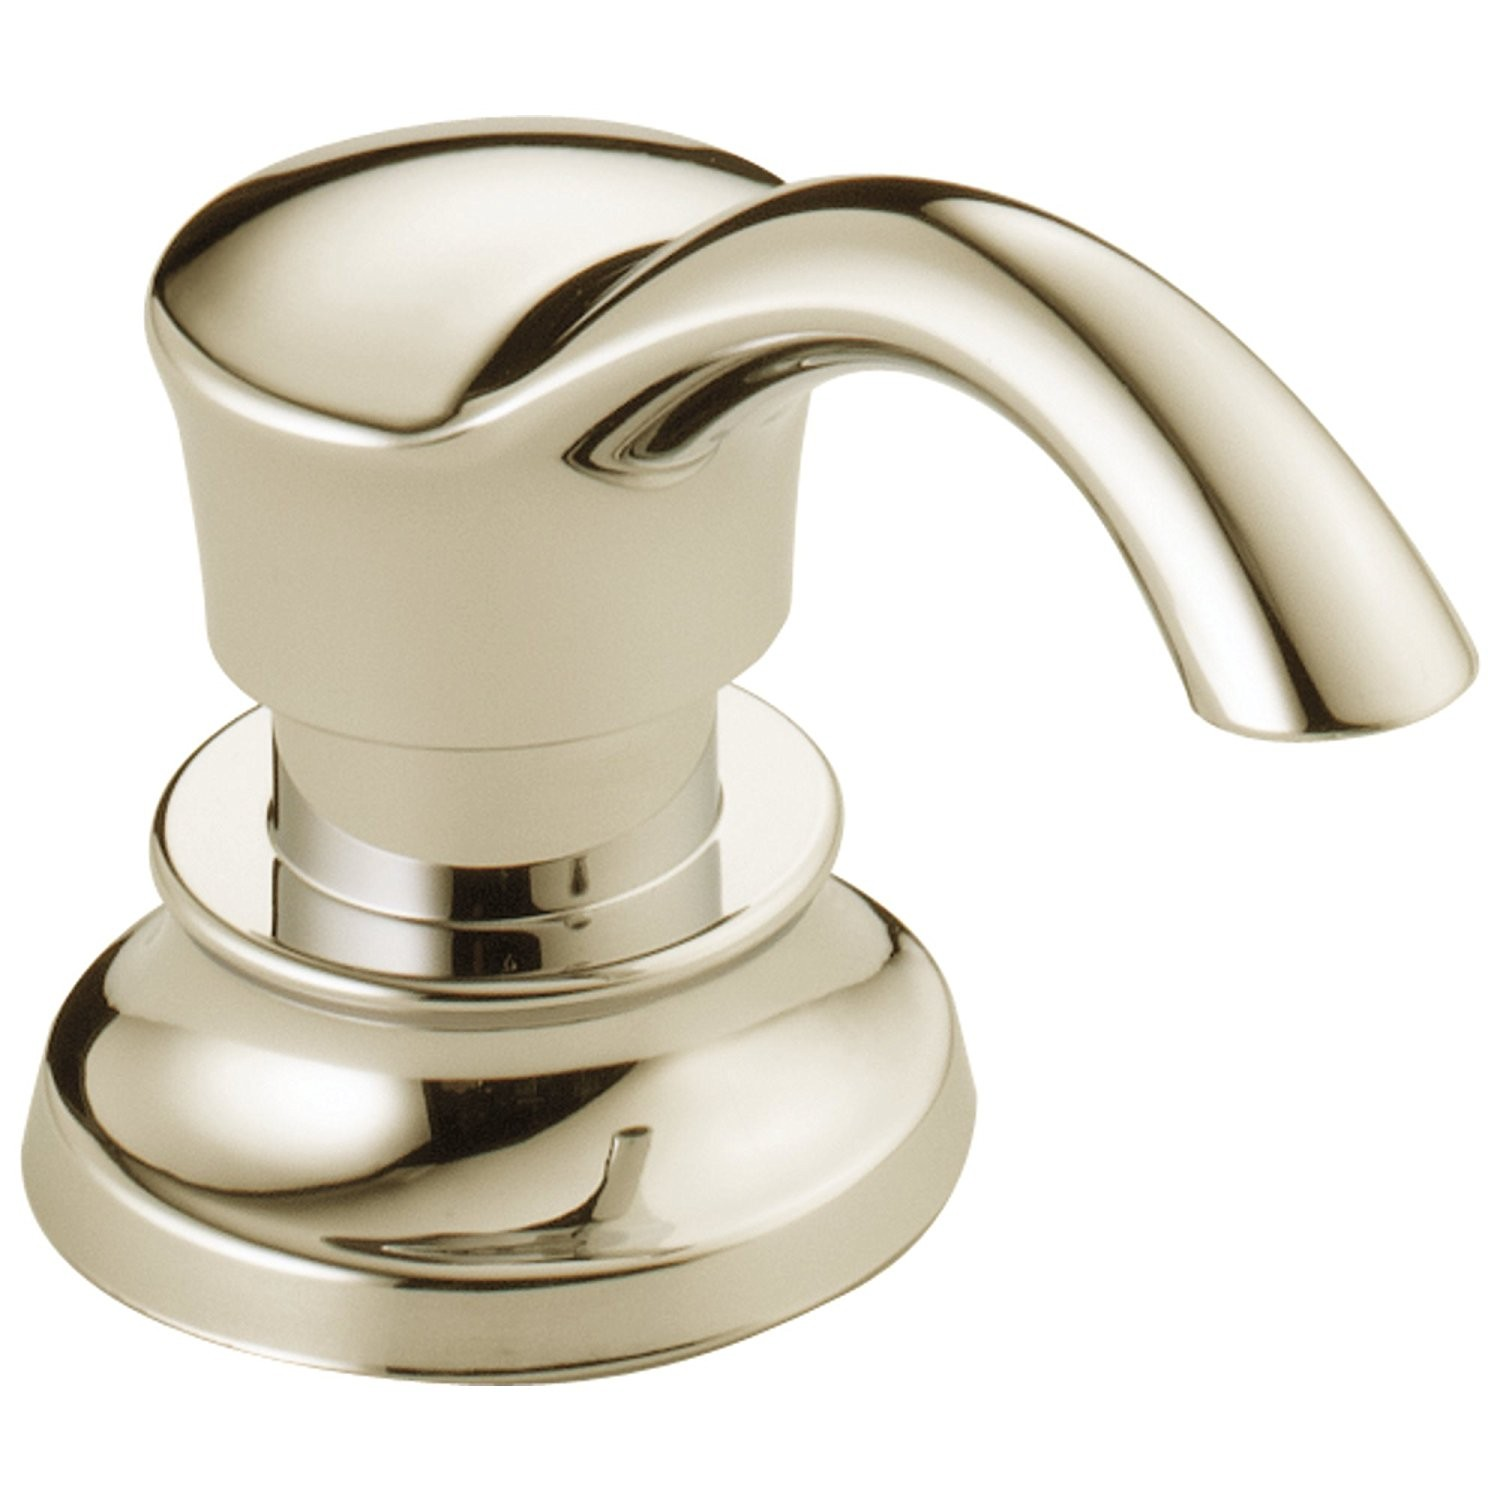 Delta Cassidy Kitchen Soap Dispenser RP71543PN Polished Nickel